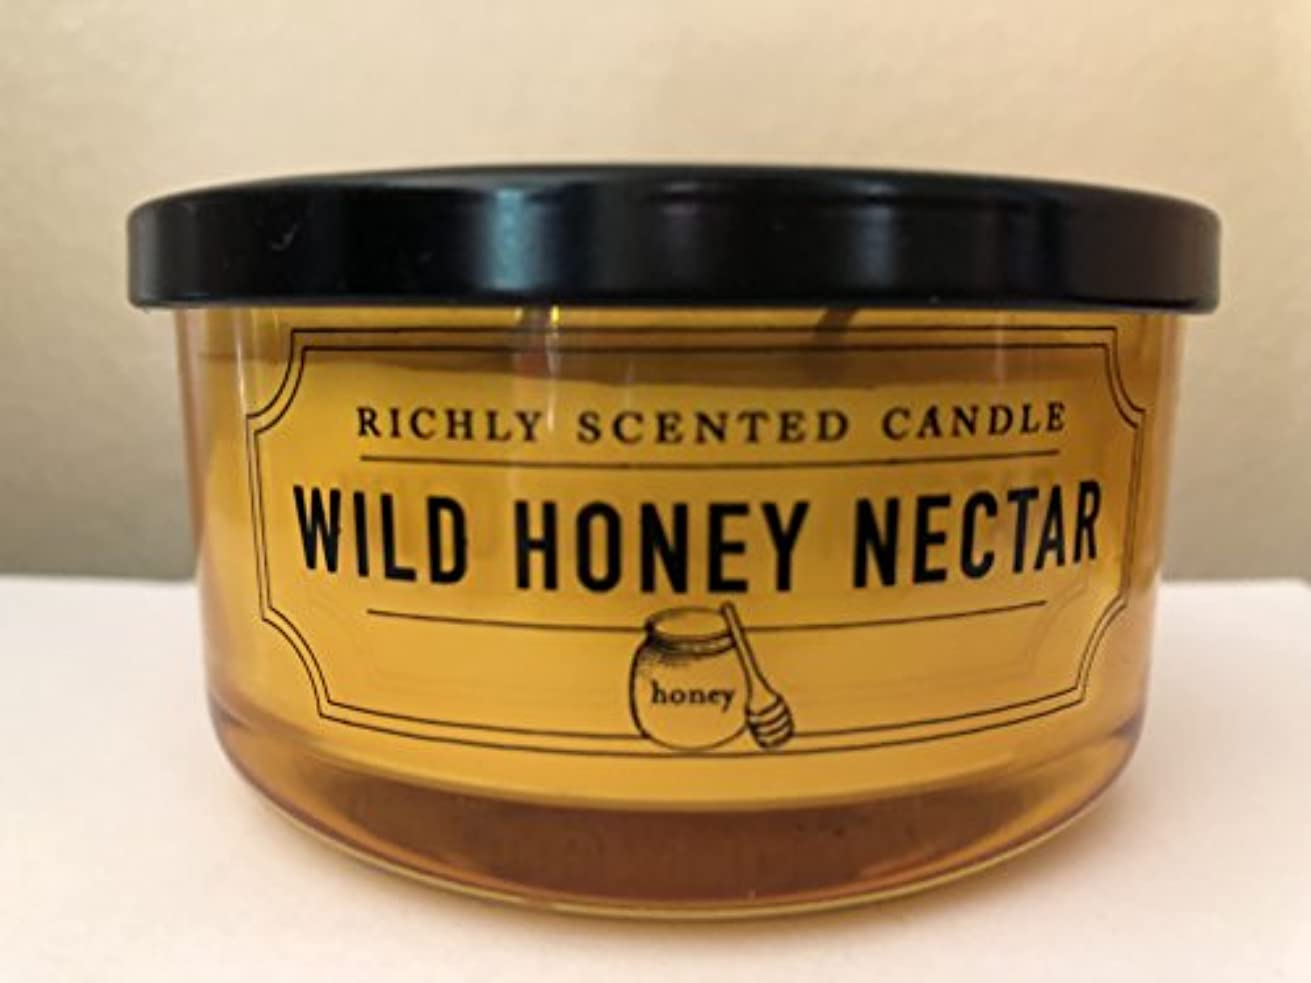 罪人母前方へDWホームWild Honey Nectar豊かな香りSmall 2 Wick Candle 4.65oz